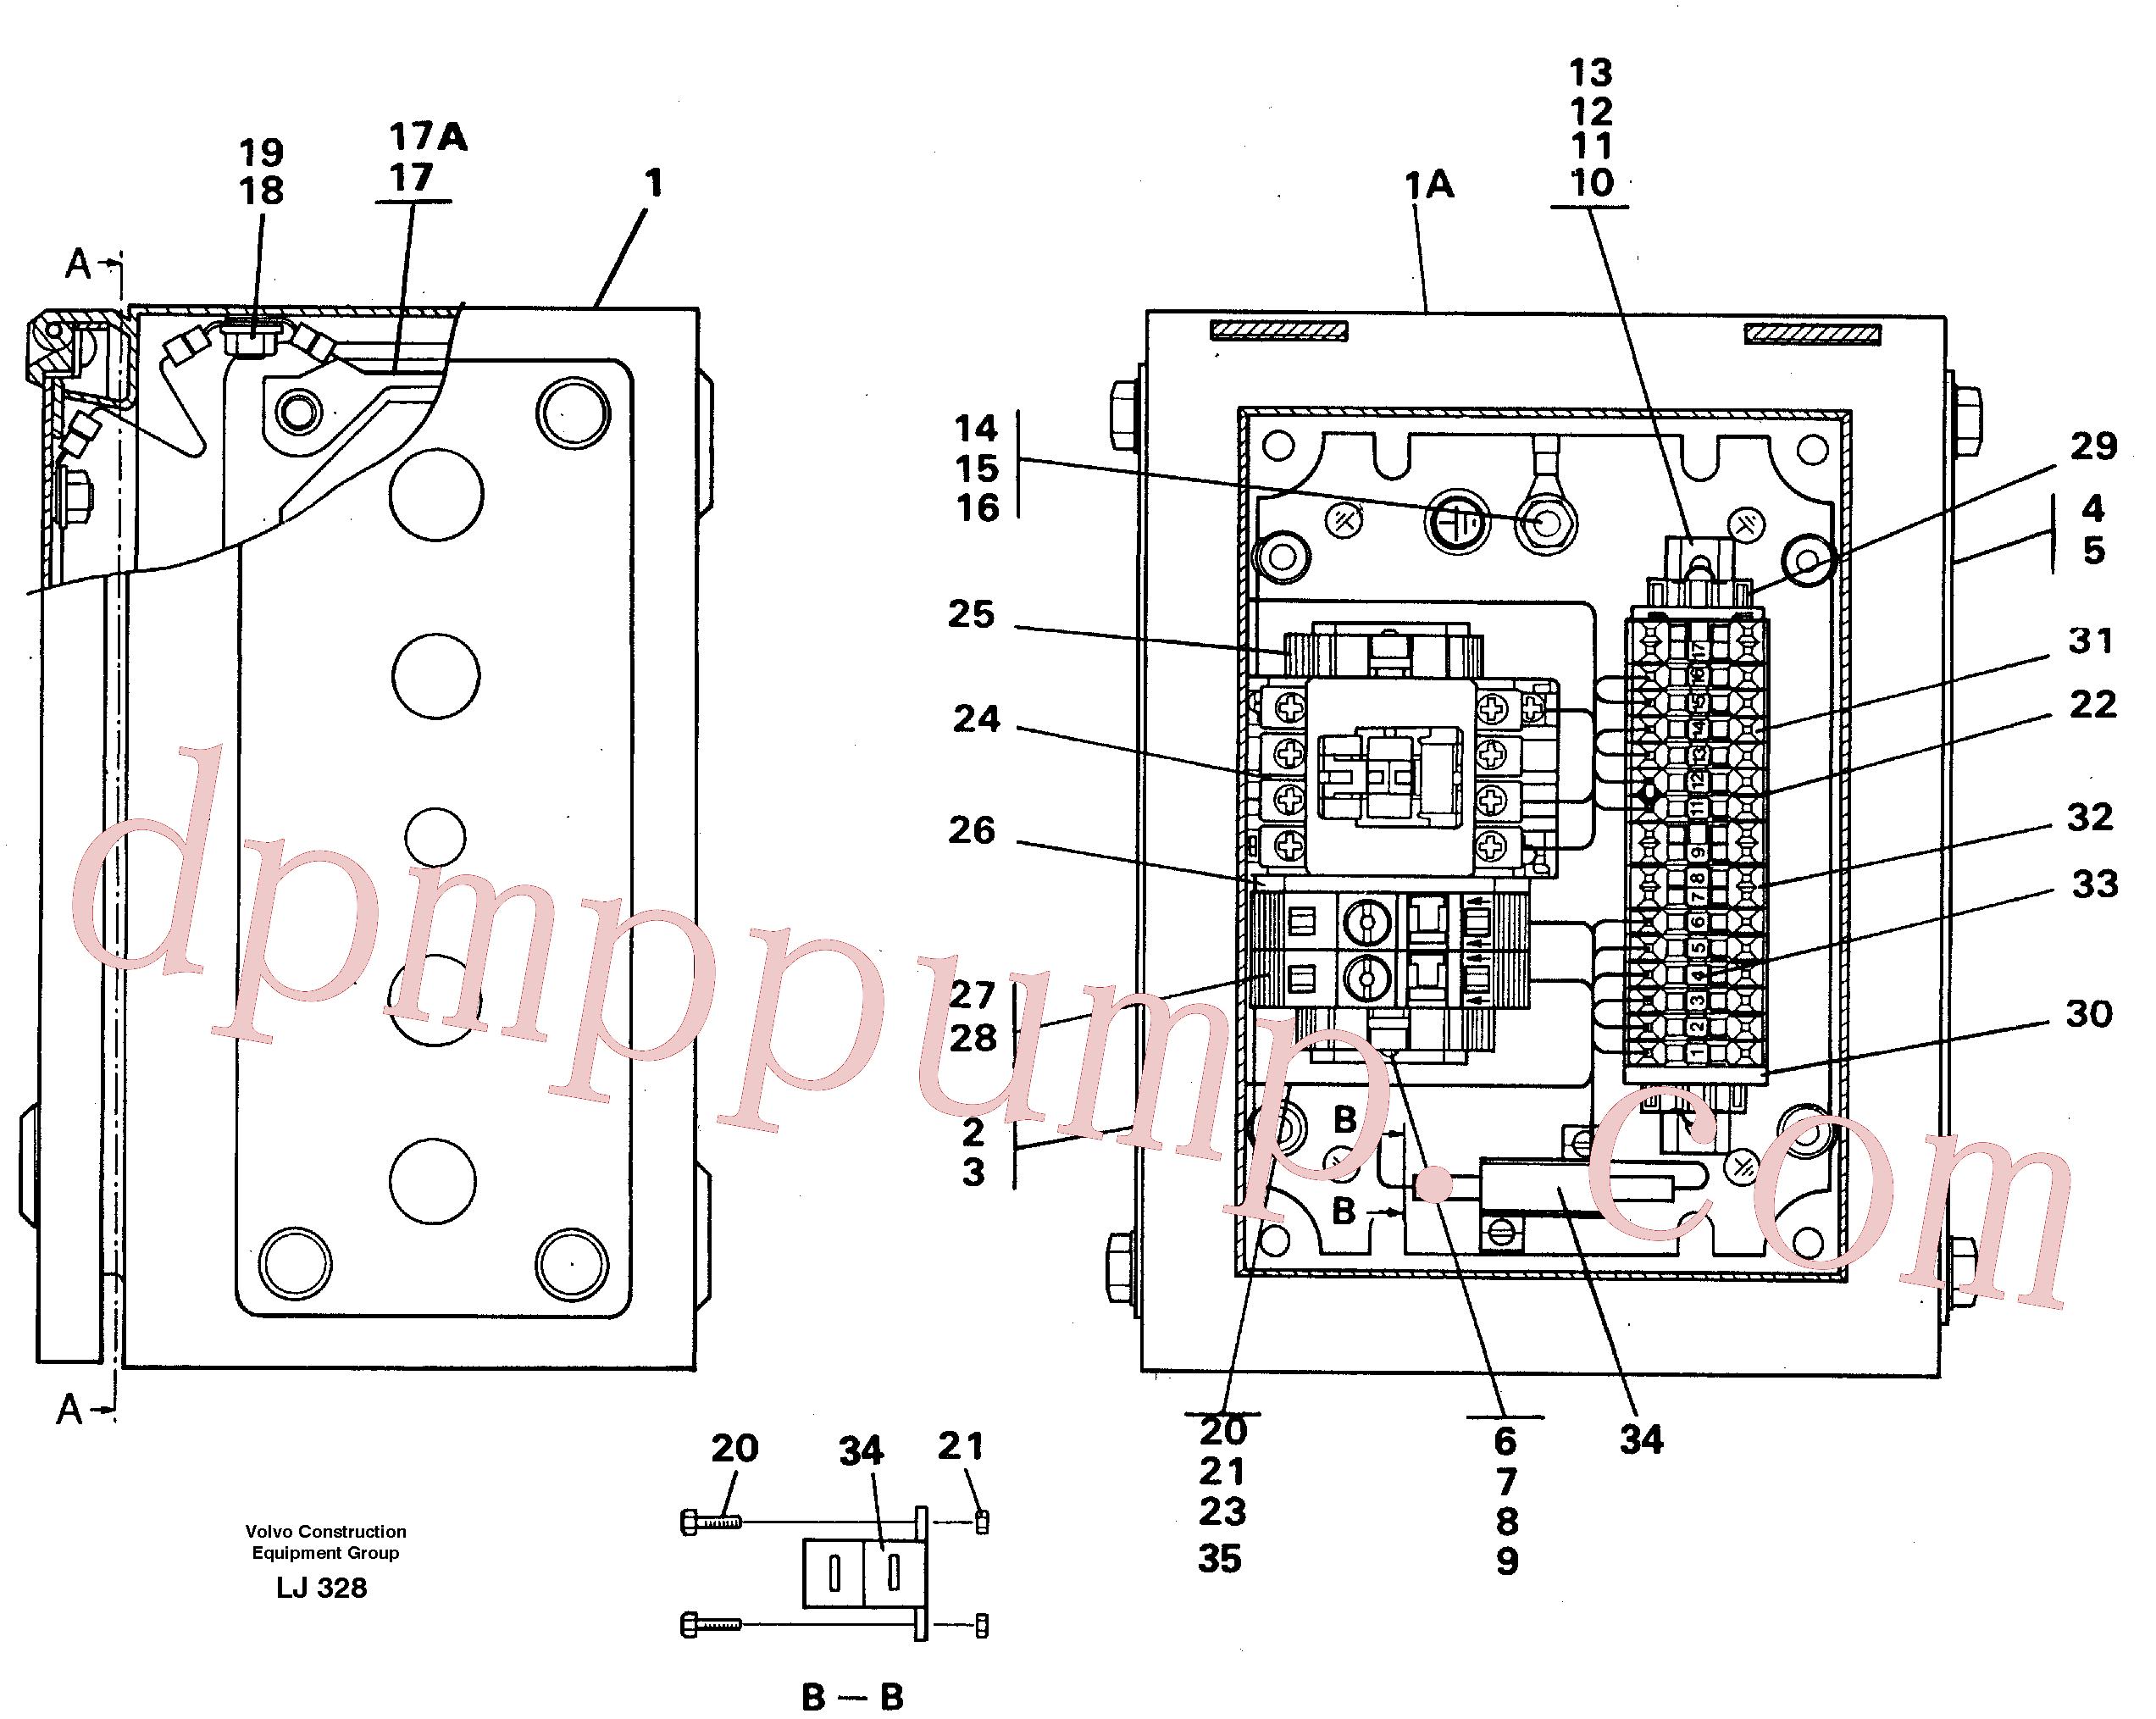 VOE14261692 for Volvo Magnet equipment Ohio, Electrical distribution unit(LJ328 assembly)